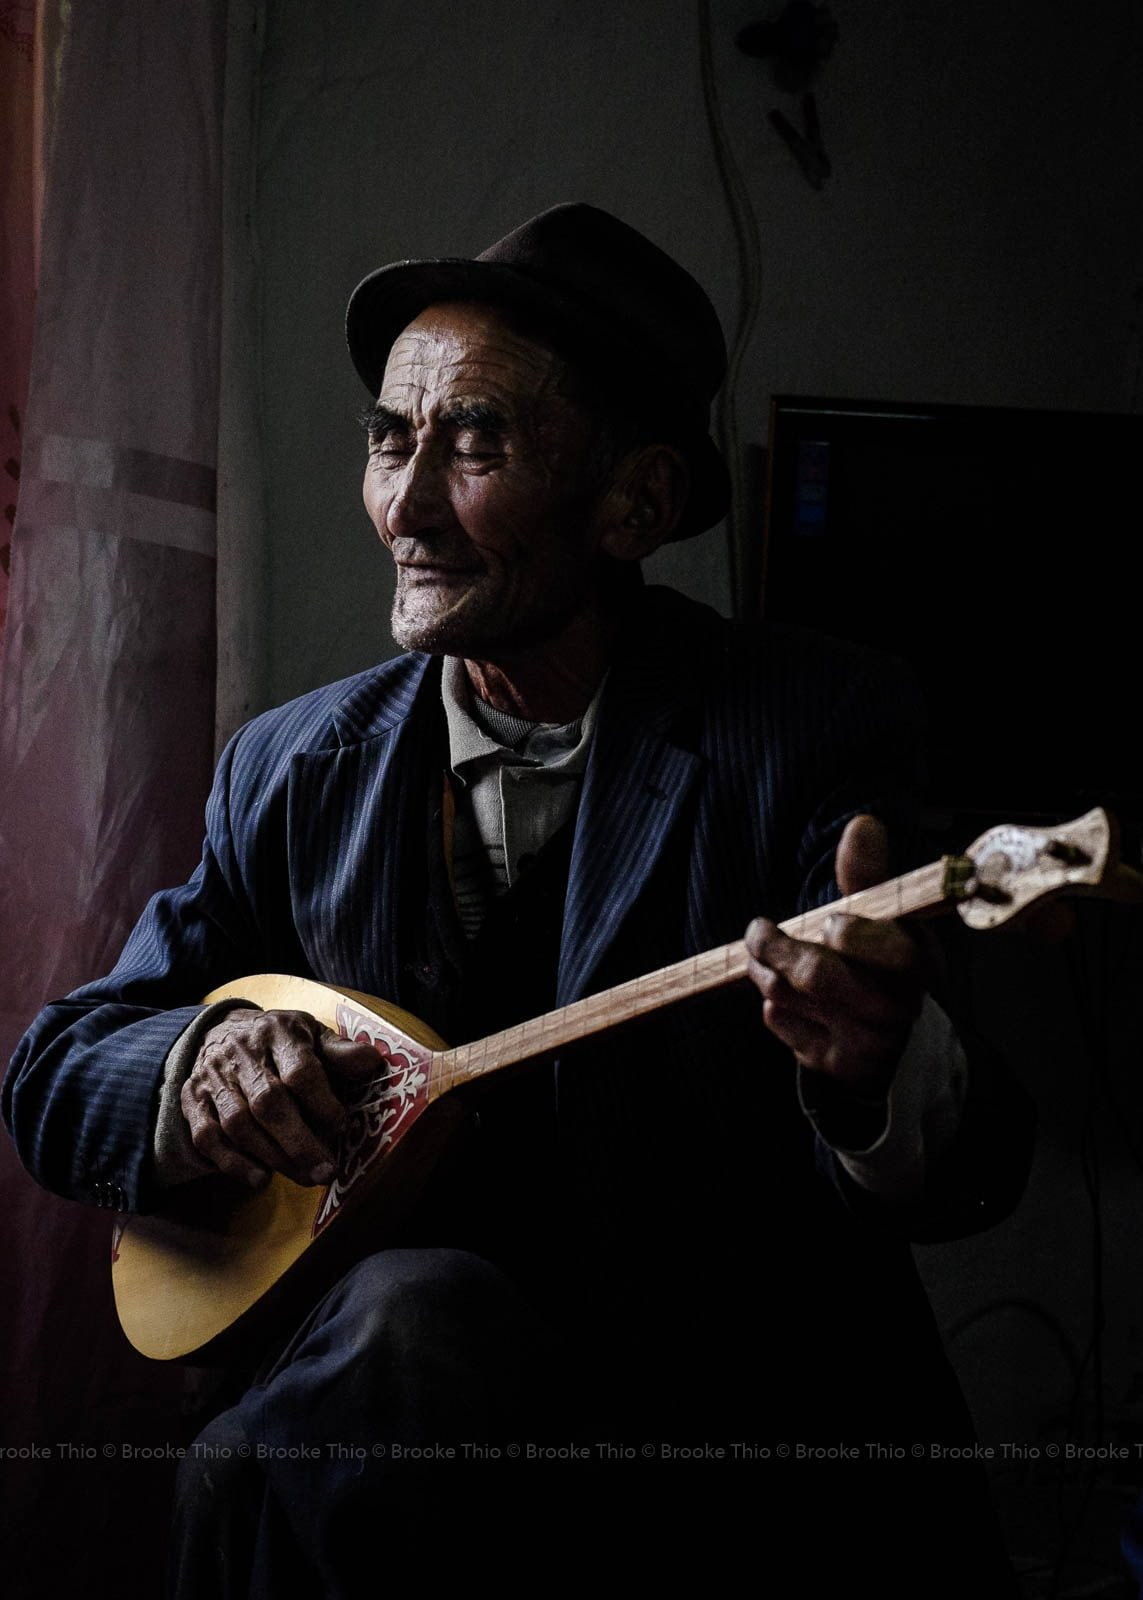 Kazakh Man Playing Dombra